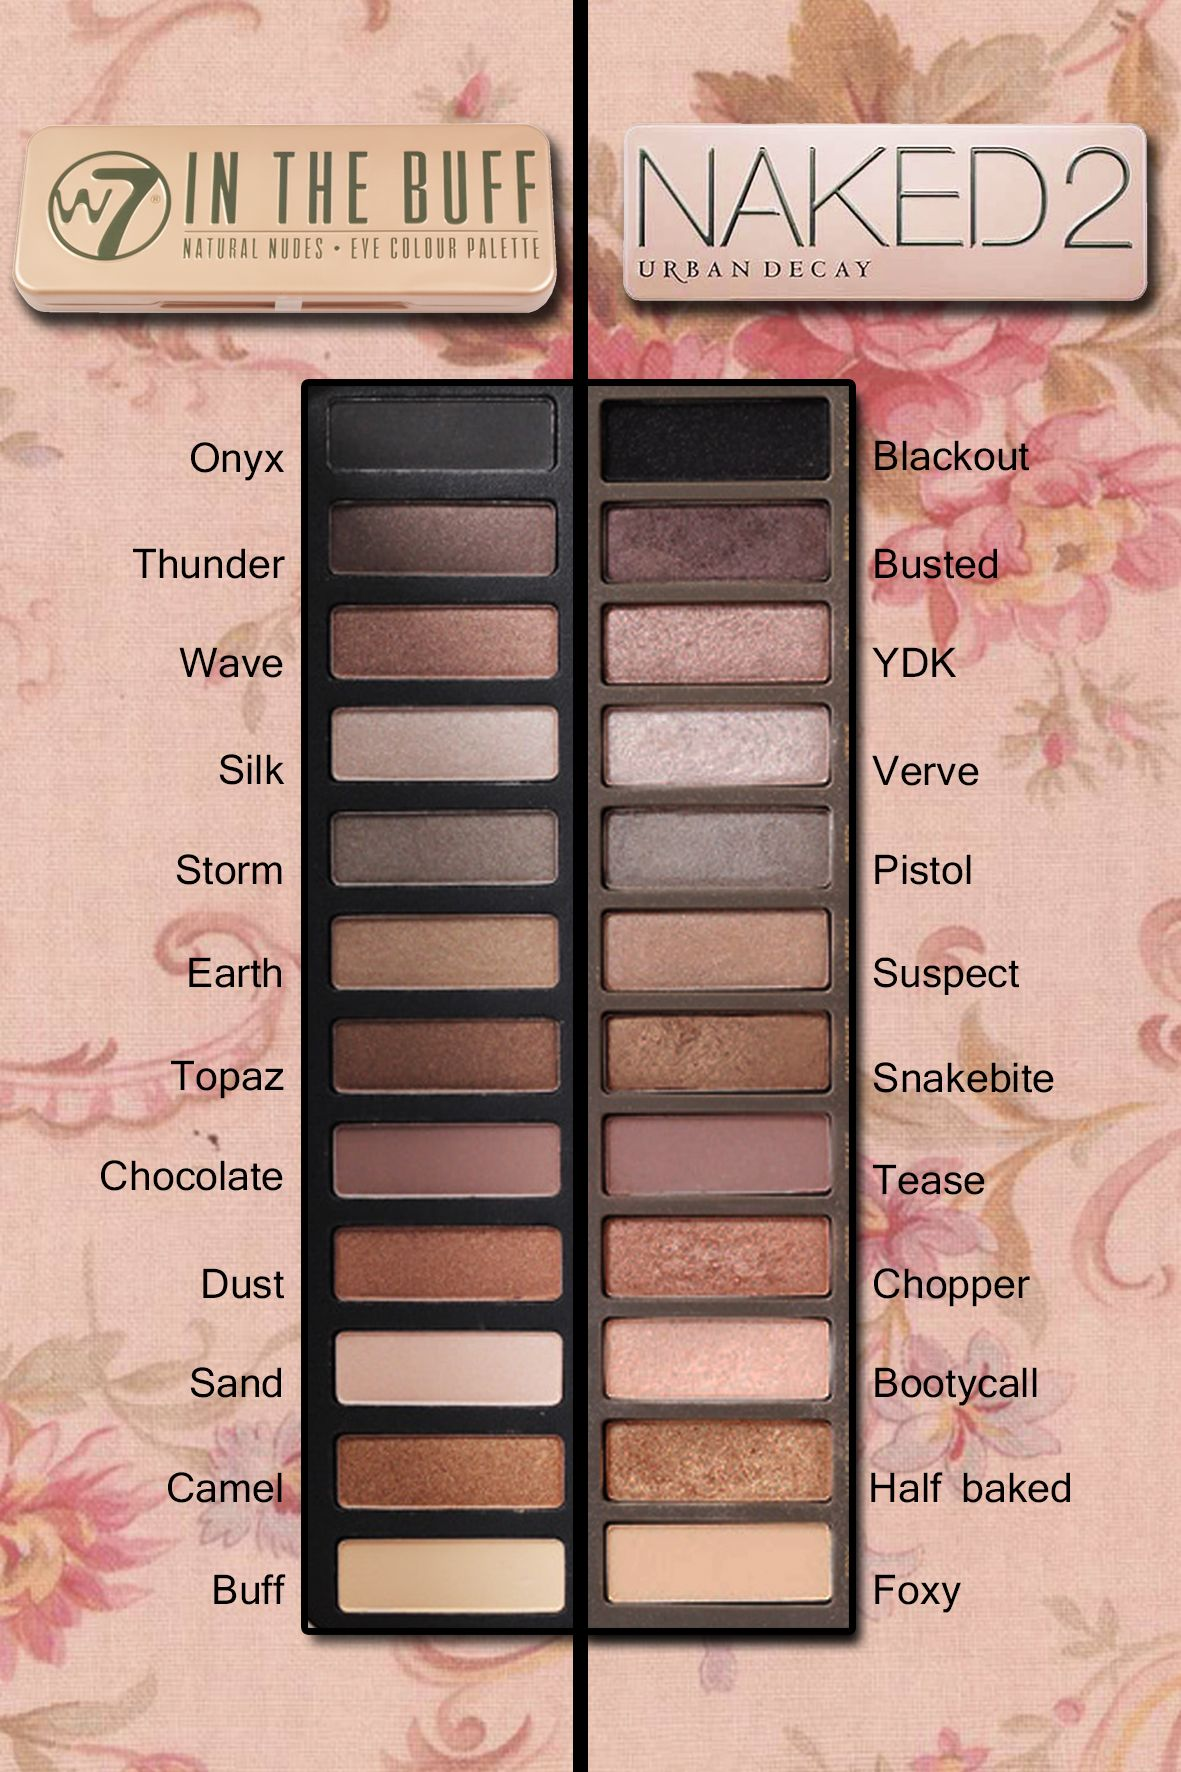 Urban Decay Naked 2 Palette dupe W7 In the buff Pinterest